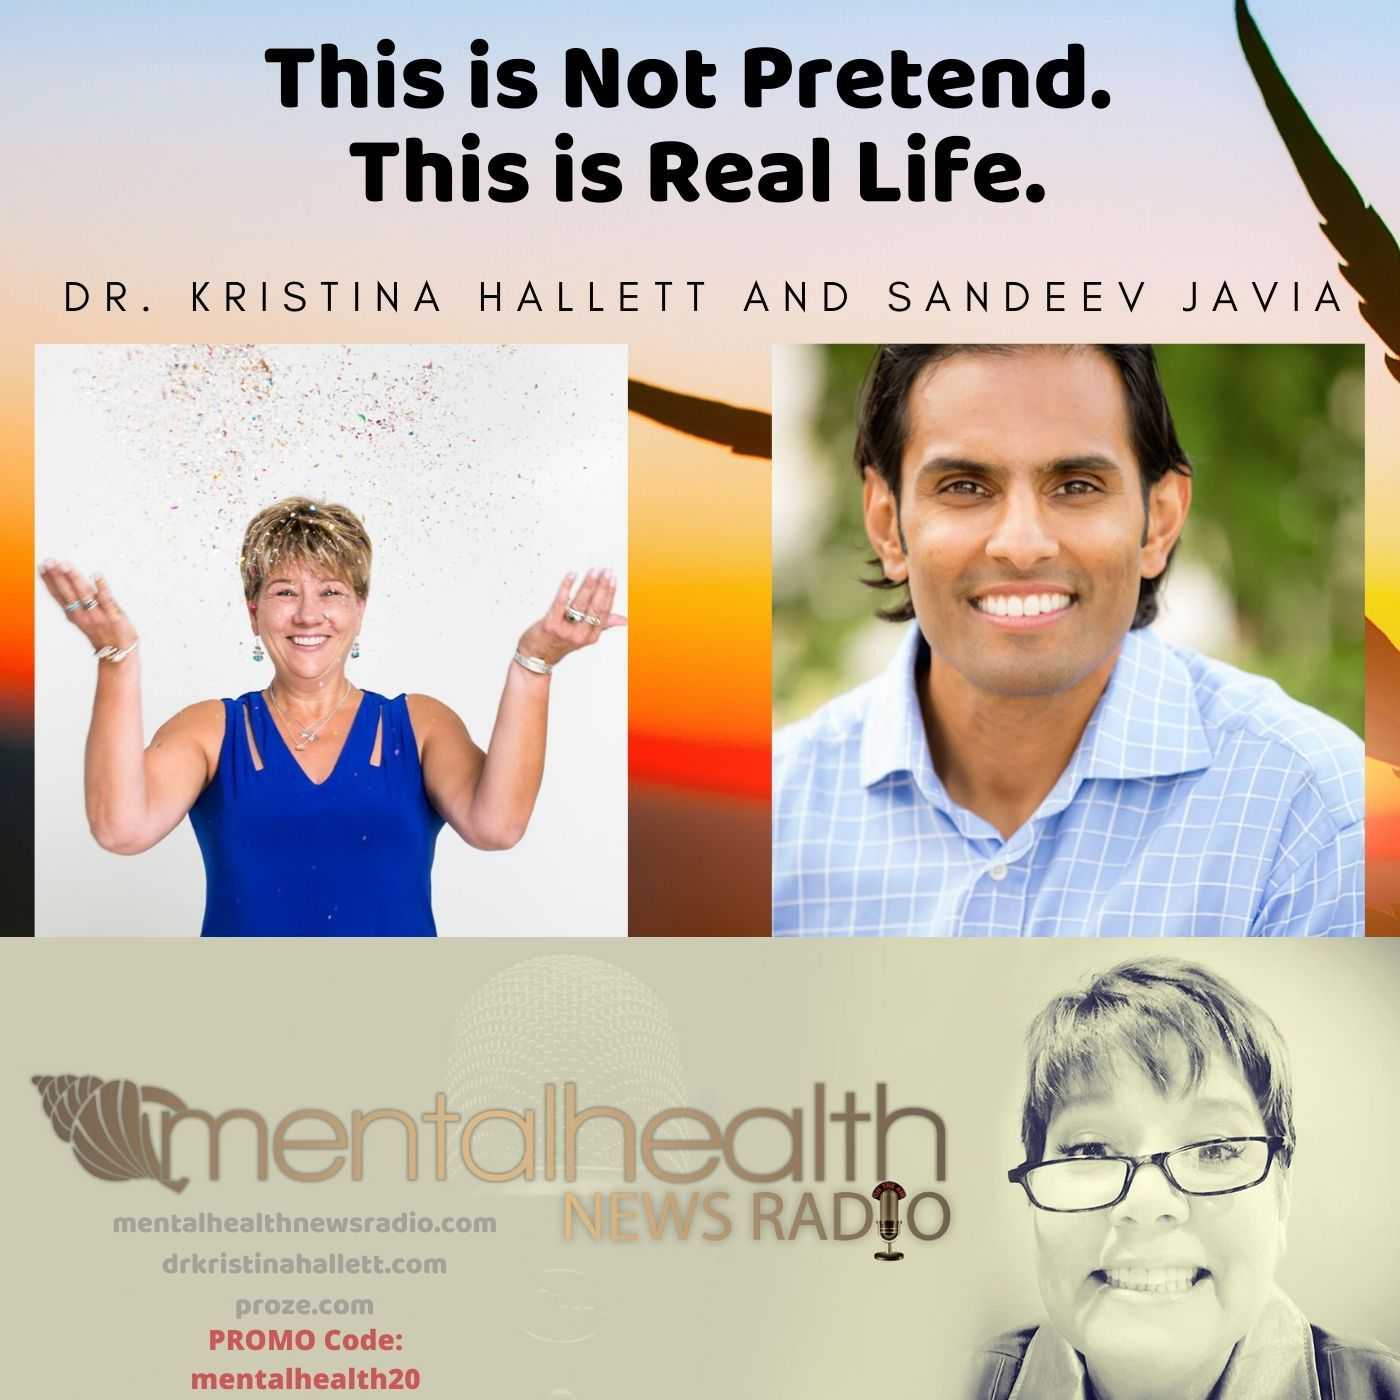 Mental Health News Radio - This Is Not Pretend. This is Real Life.